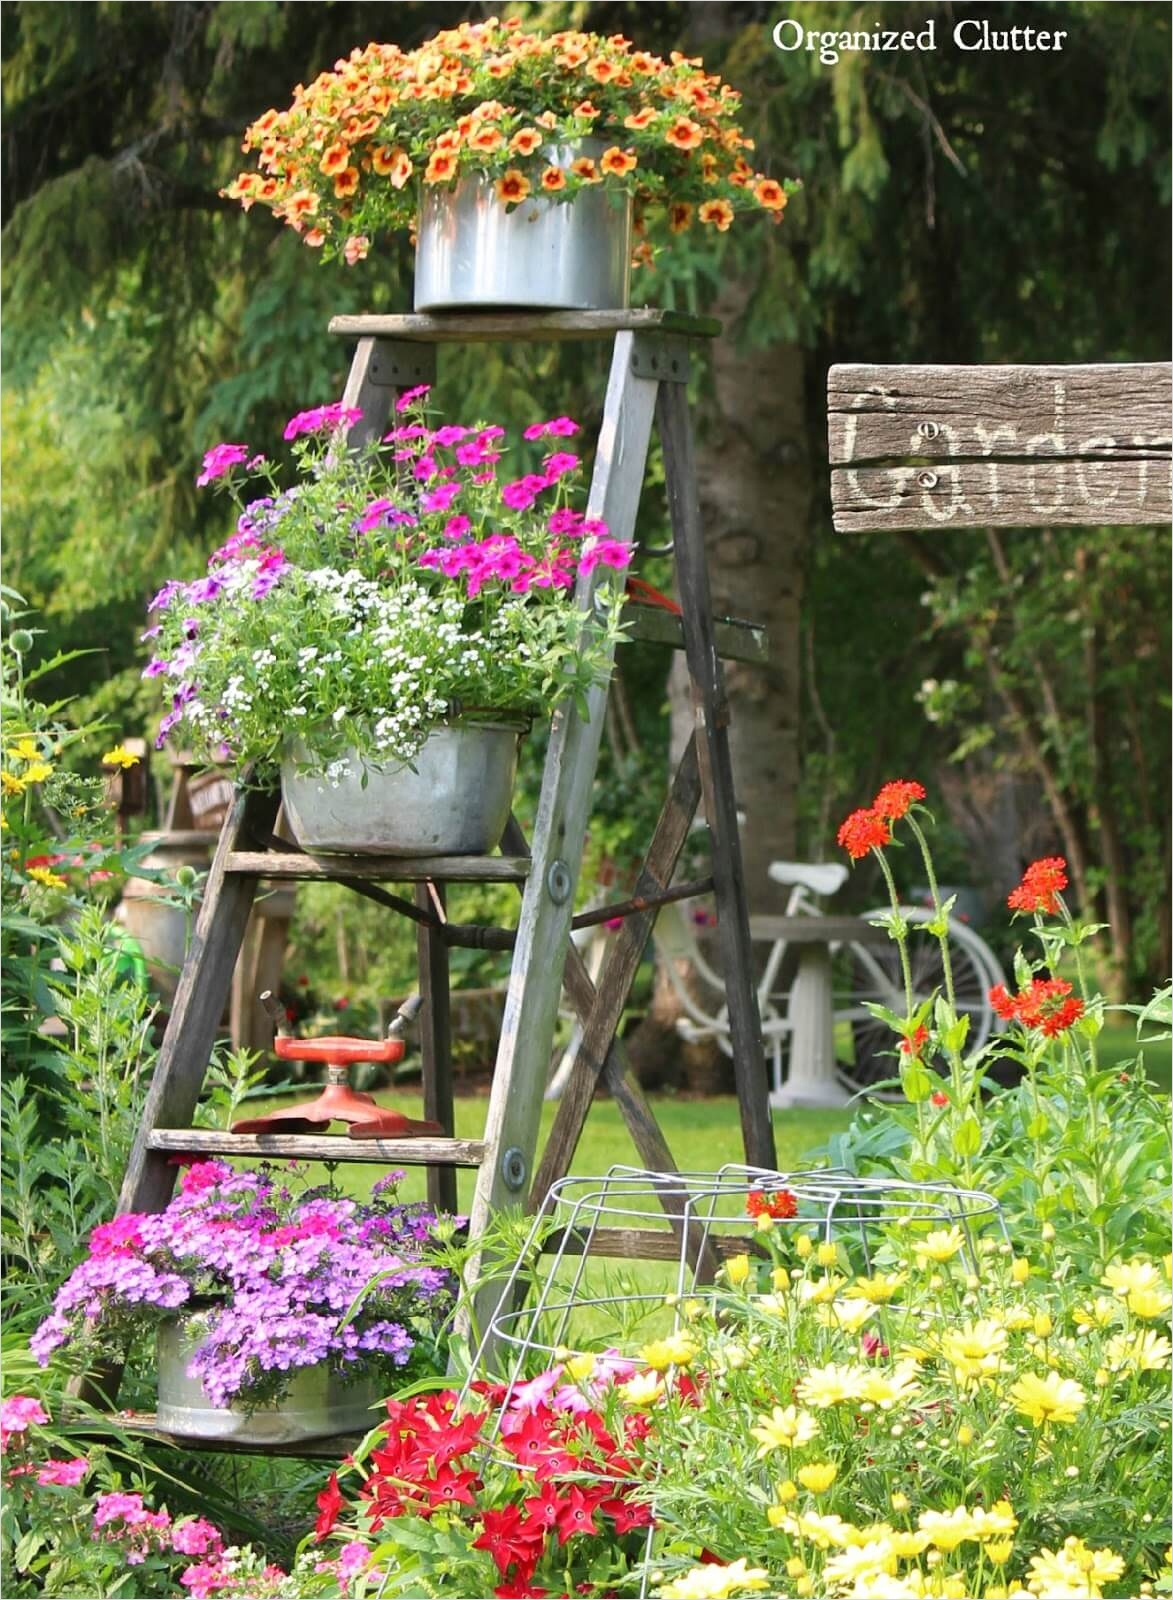 42 Amazing Ideas Country Garden Decor 16 34 Best Vintage Garden Decor Ideas and Designs for 2017 8